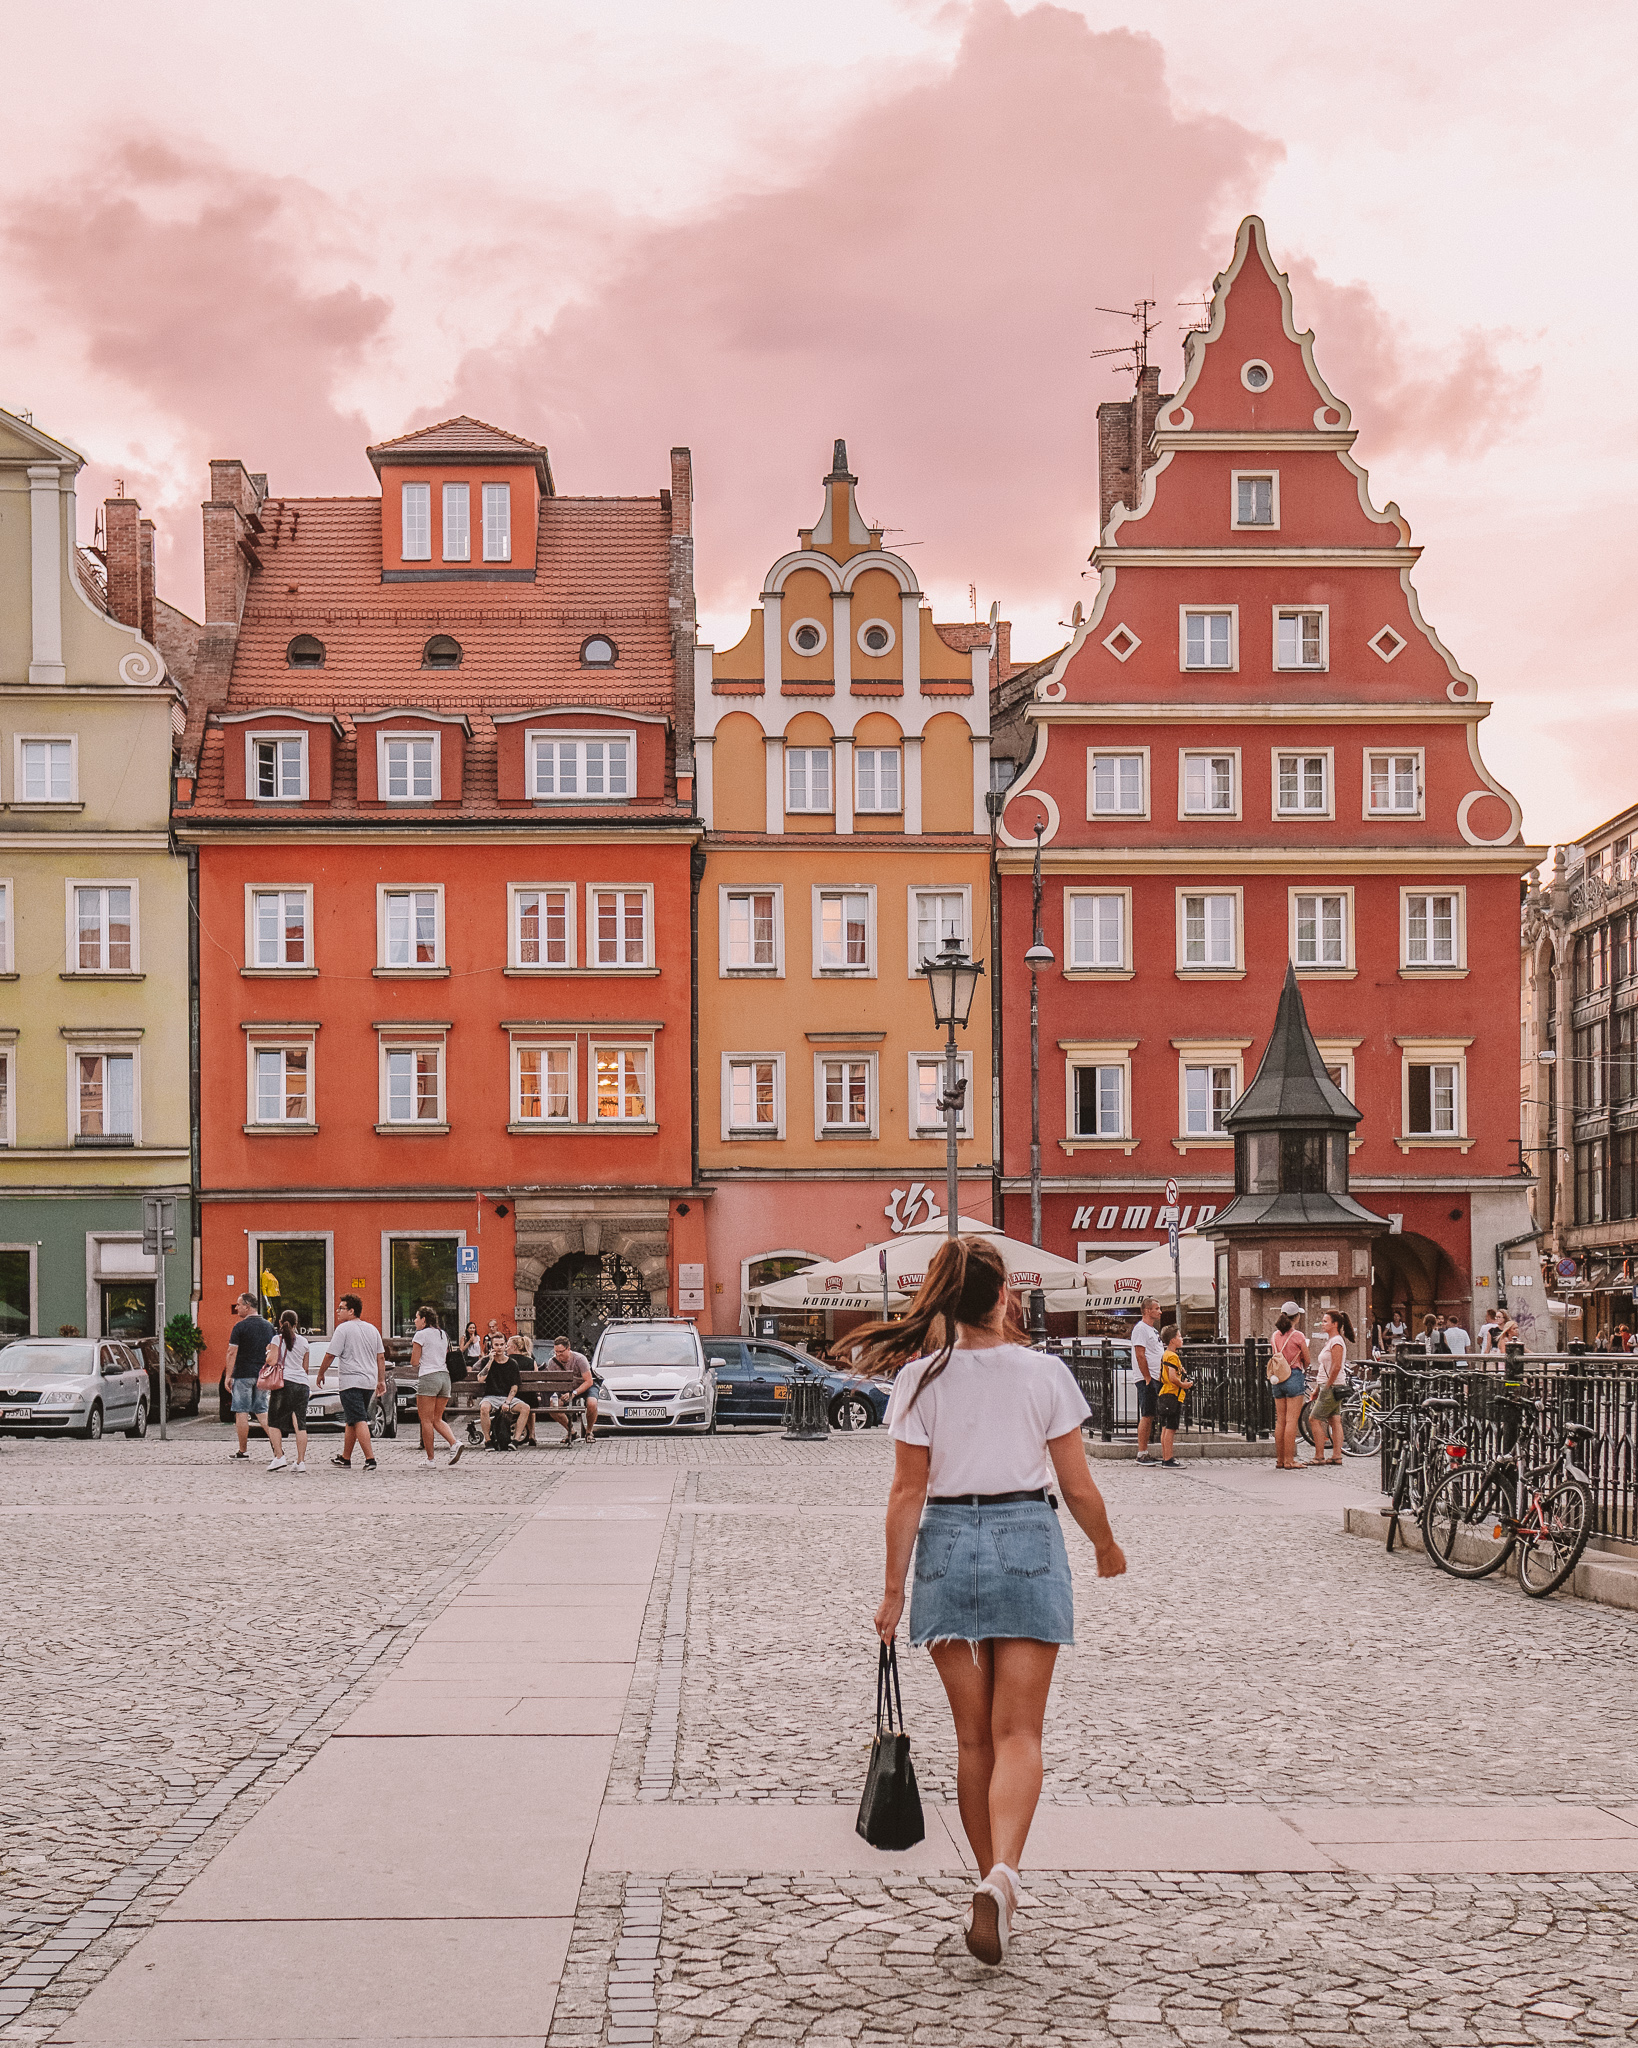 Walking through Wroclaw, Poland